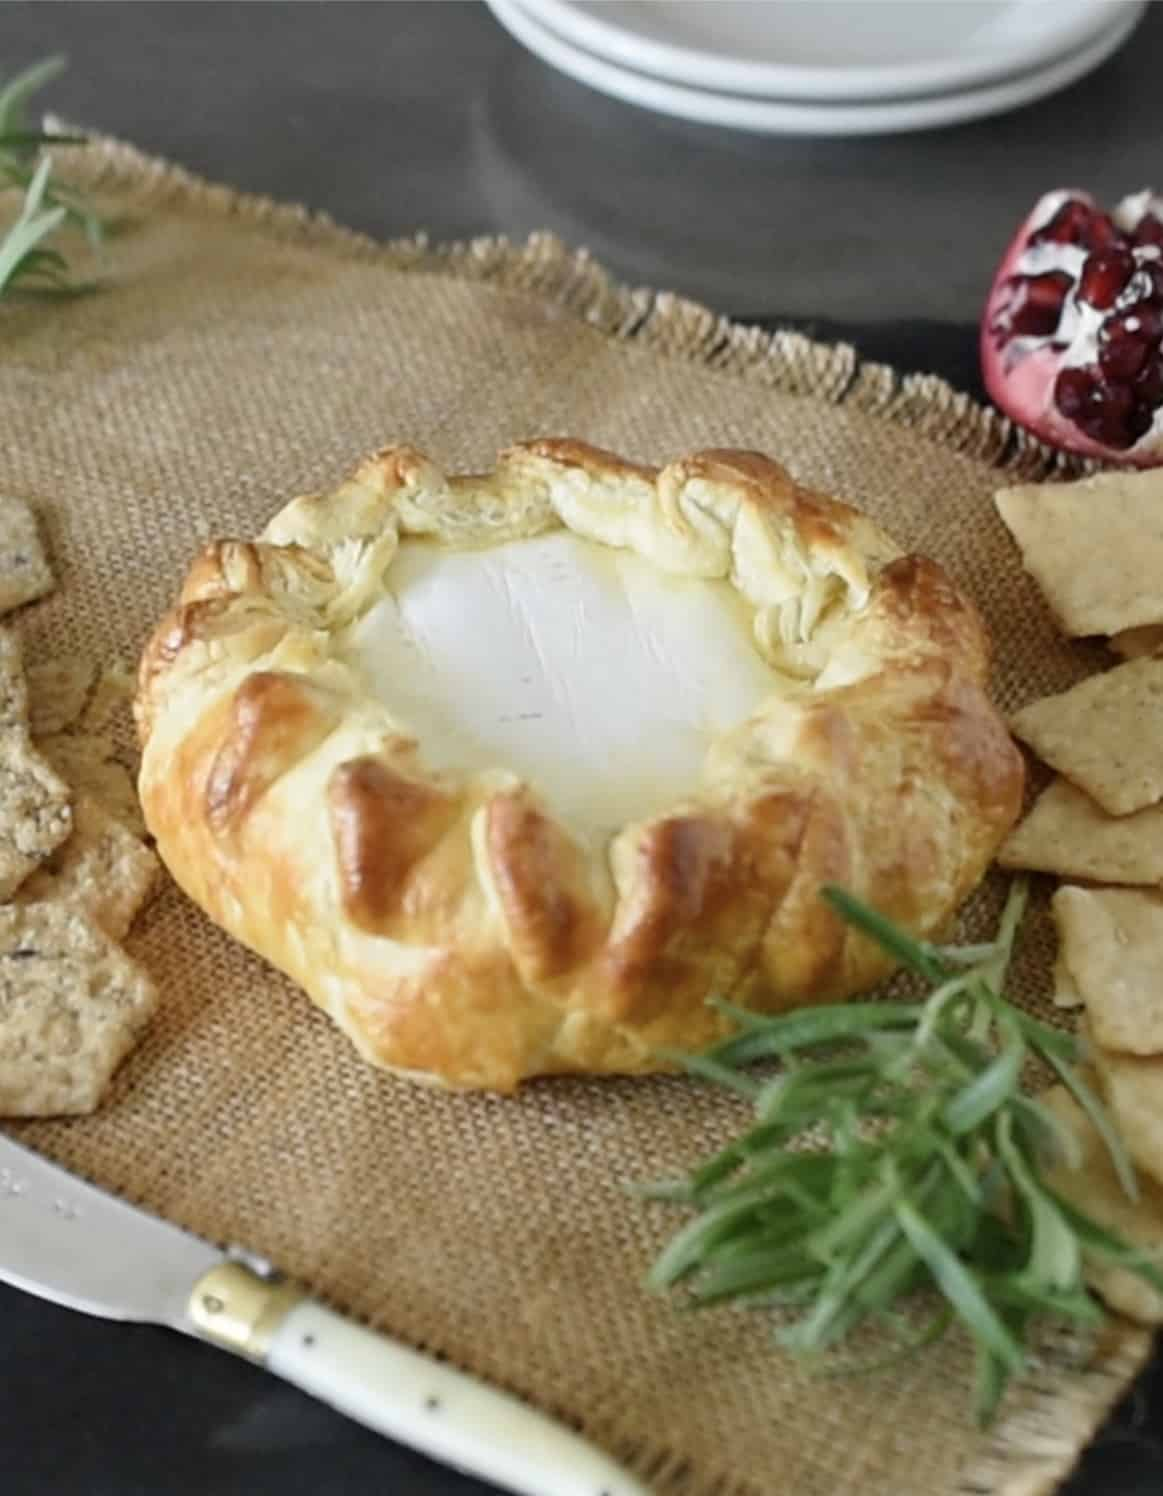 A wheel of brie wrapped in puff pastry and baked